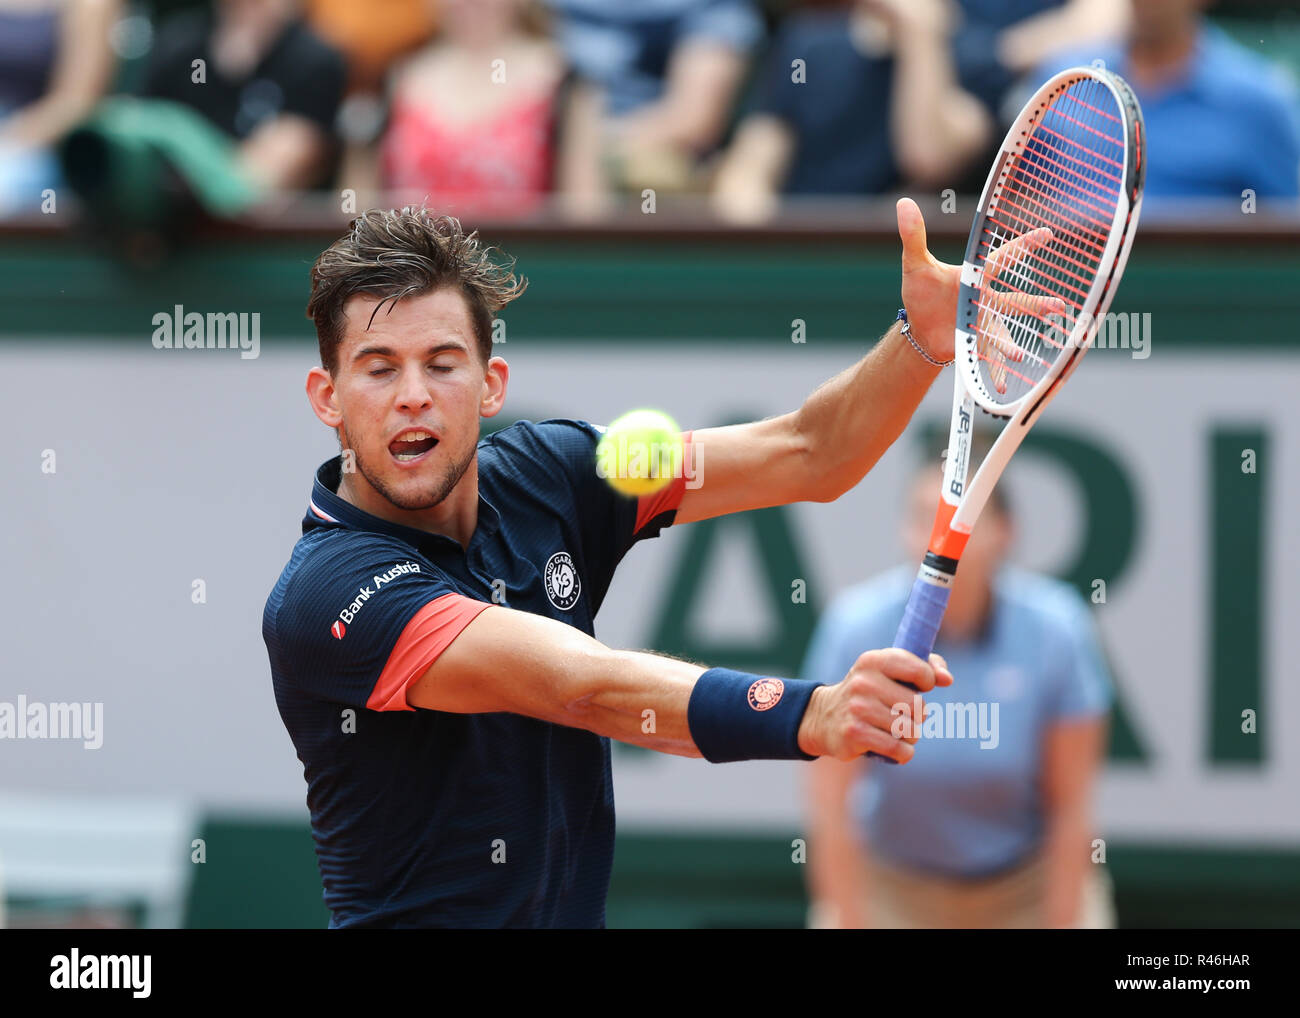 Austrian tennis player Dominic Thiem playing backhand shot at the French Open 2018, Paris, France - Stock Image